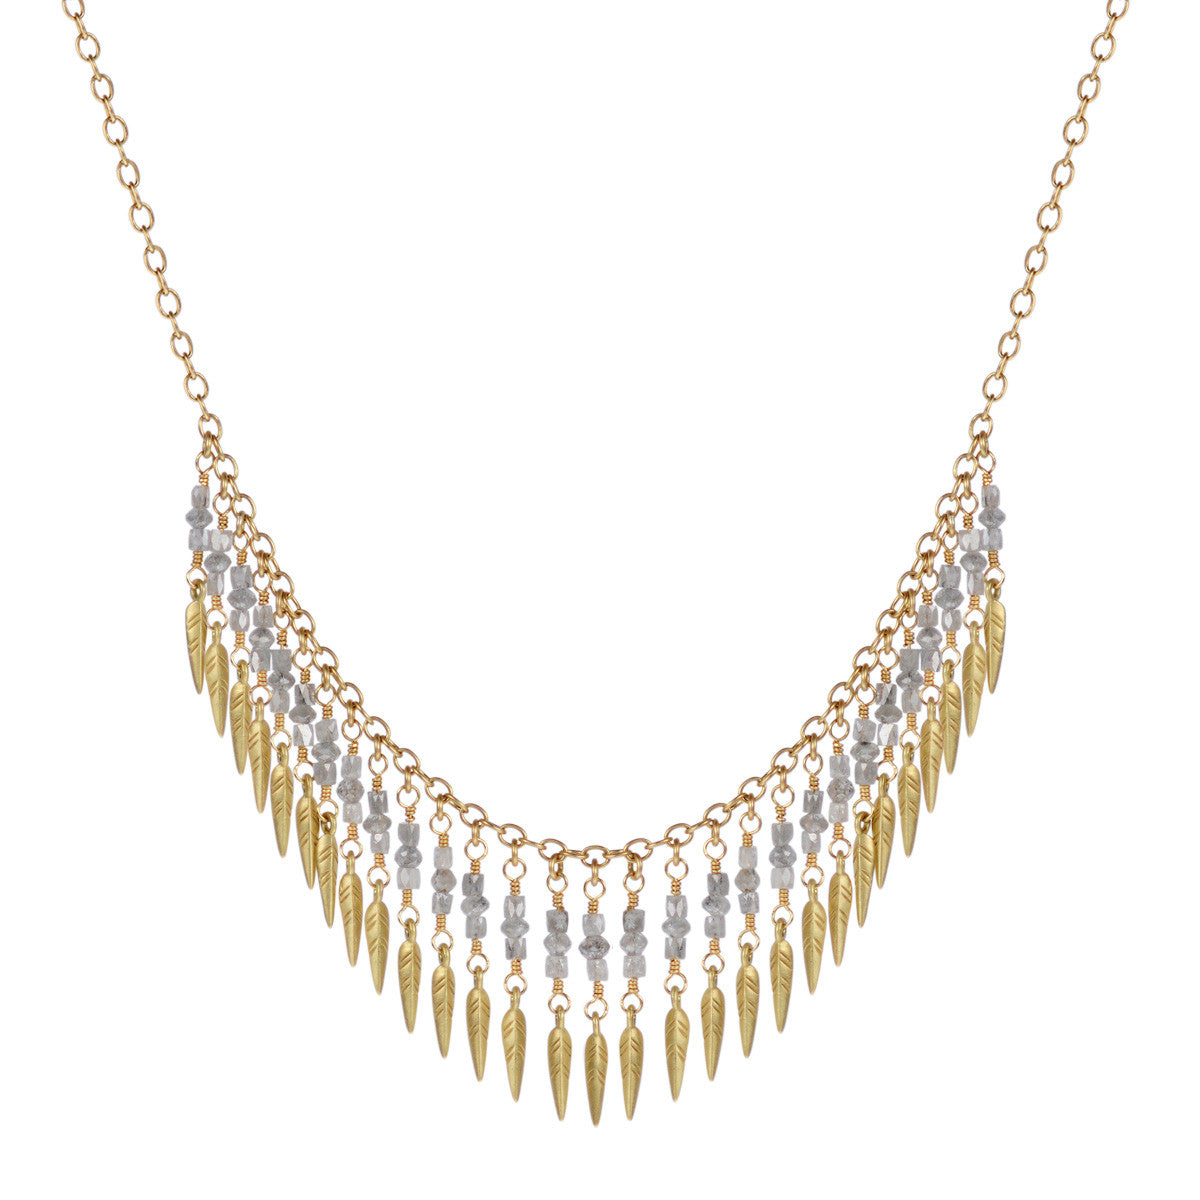 18K Gold Grey Diamond Dream Catcher Fringe Necklace